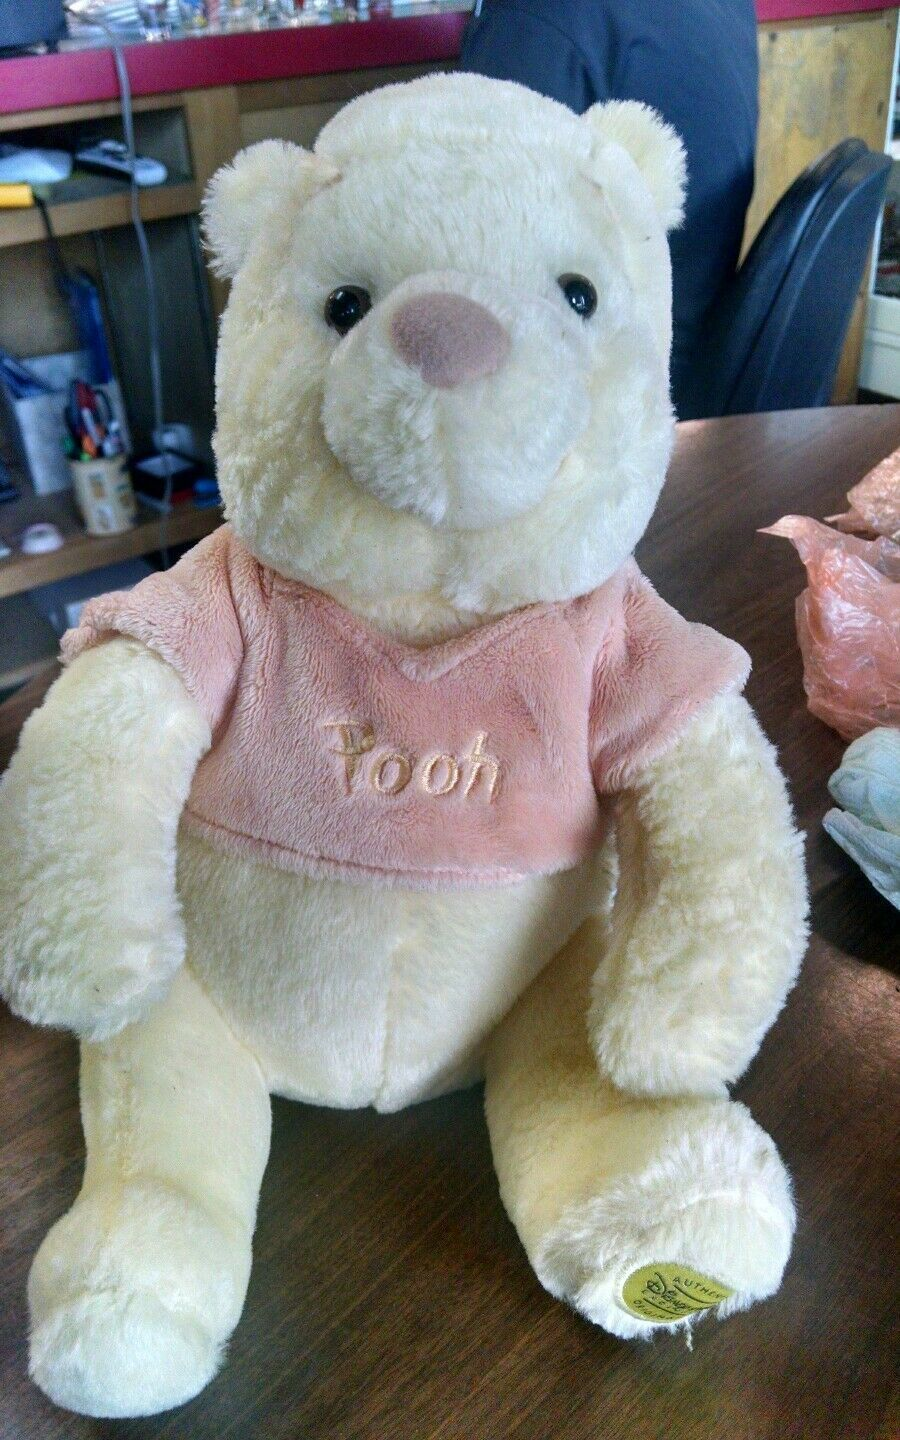 Winnie the pooh DISNEY EXCLUSIVE peach shirt Plush bear Doll retired b93